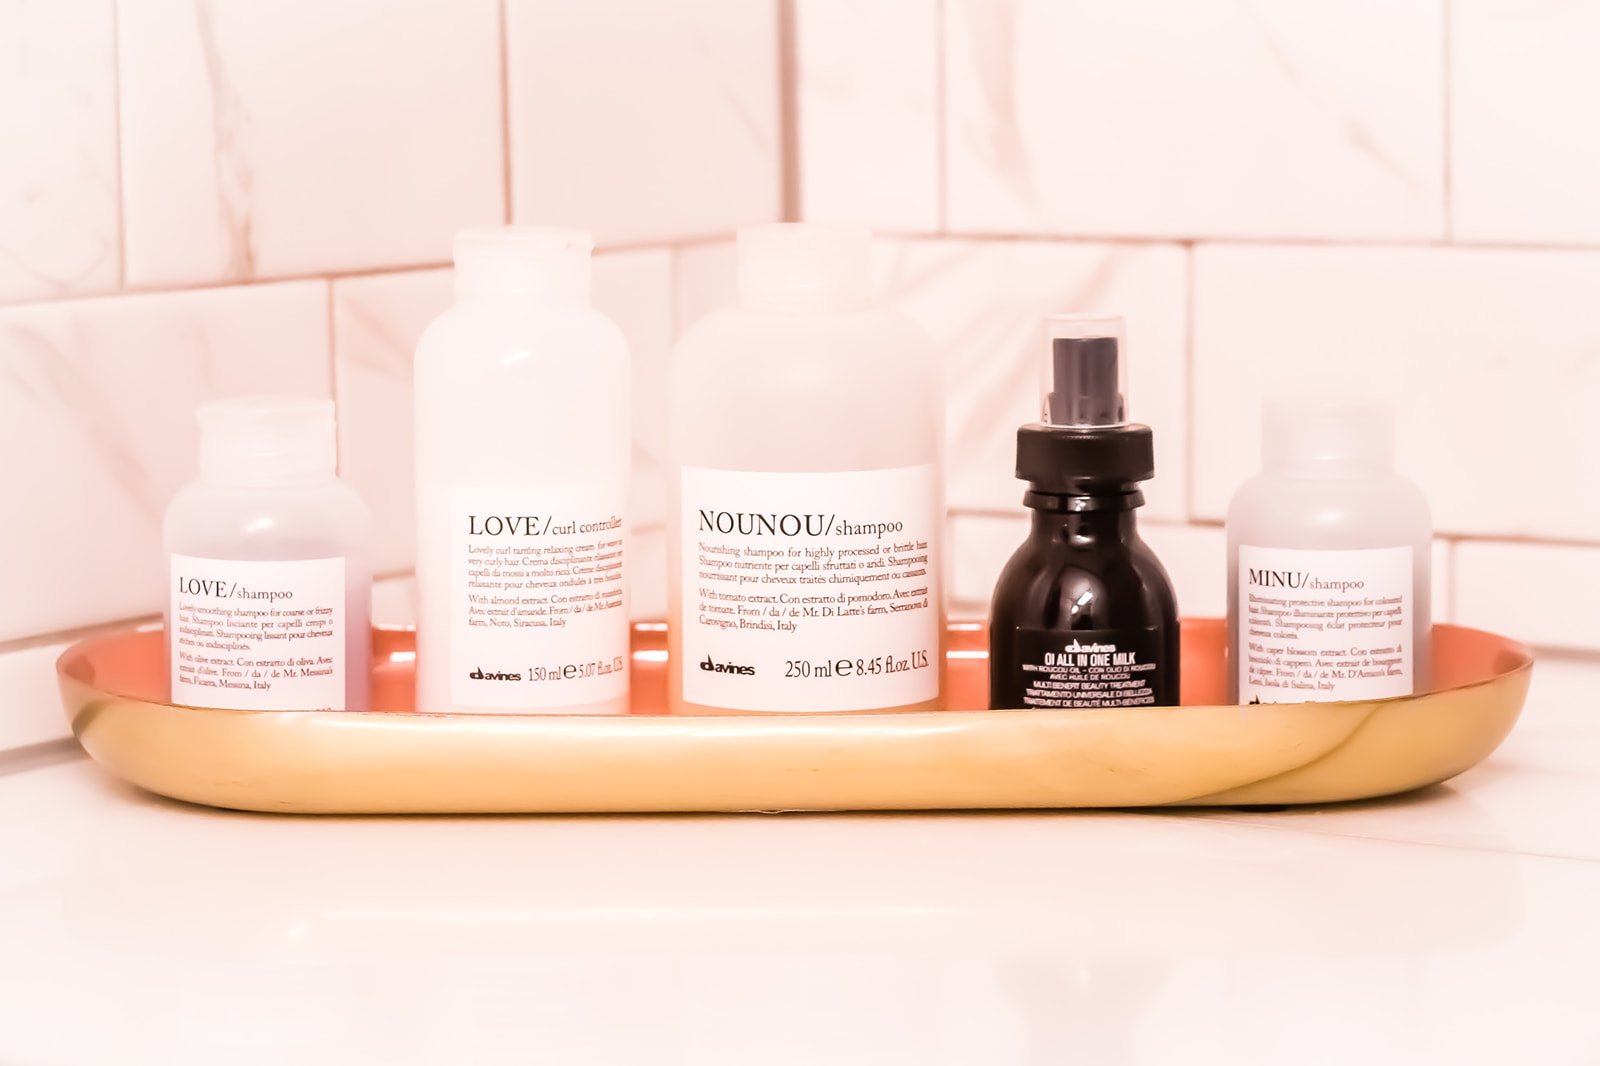 I use the Davines products for my hair every day and absolutely love them!